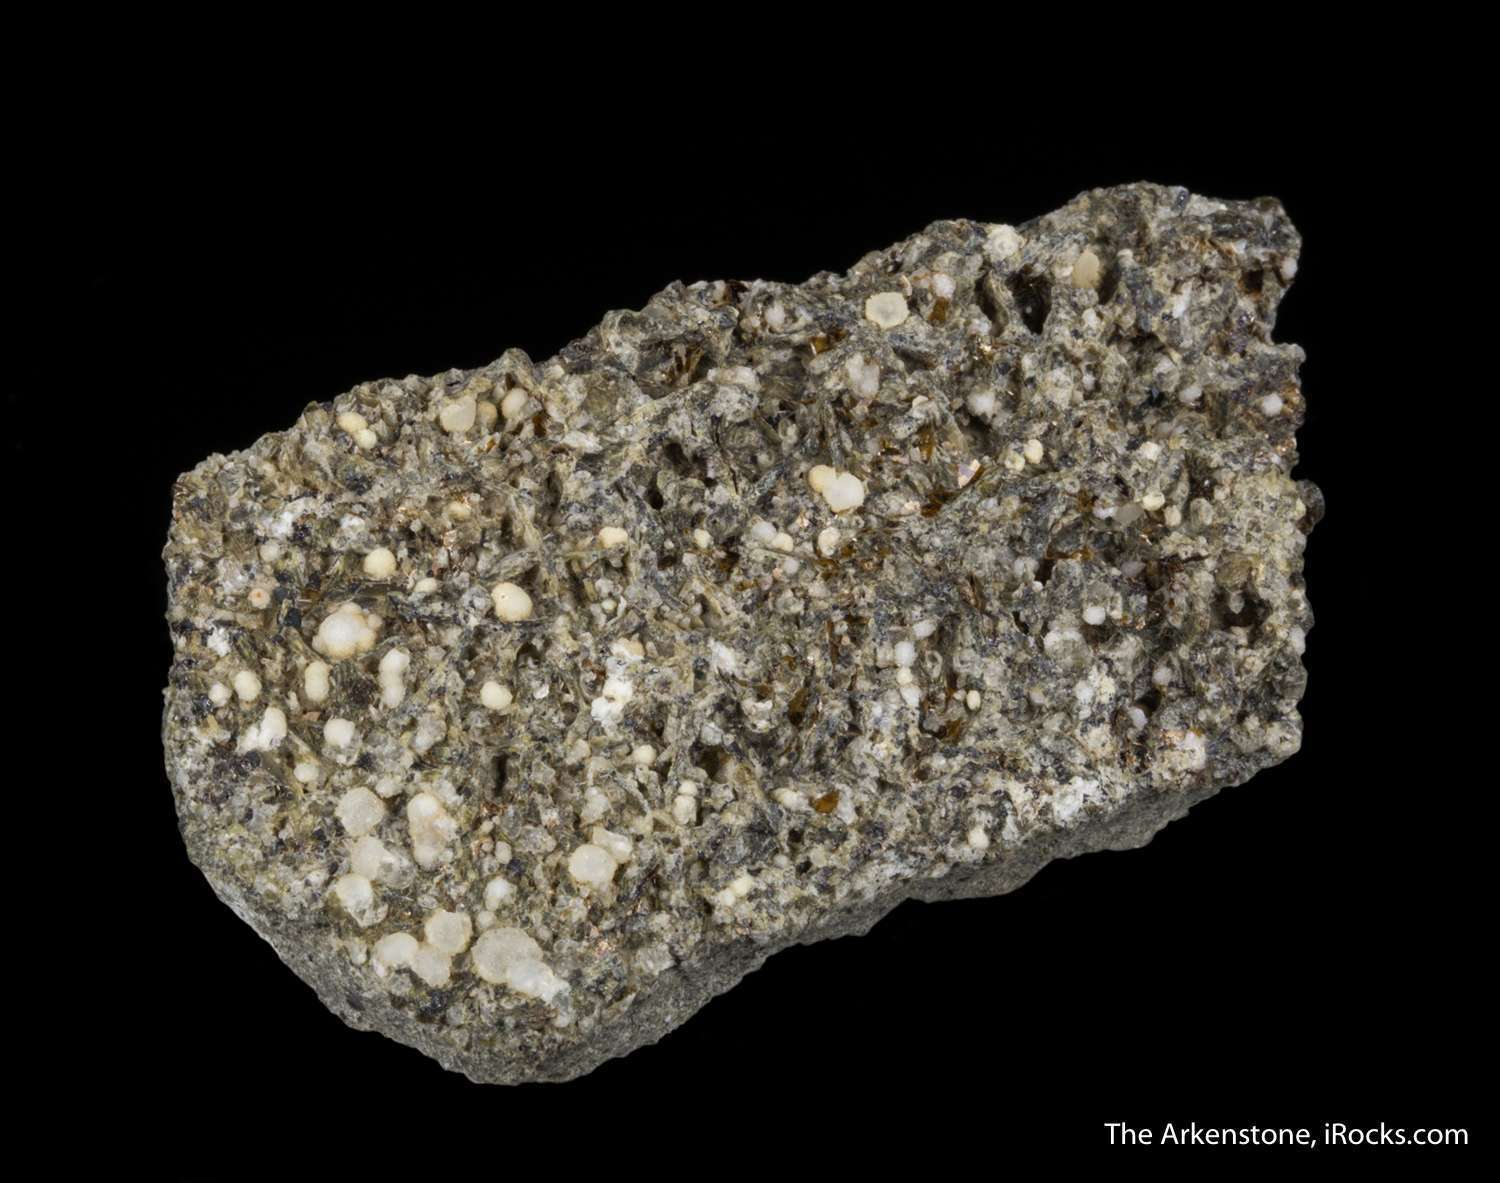 From type locality San Venanzo quarry exceedingly rare hydrated